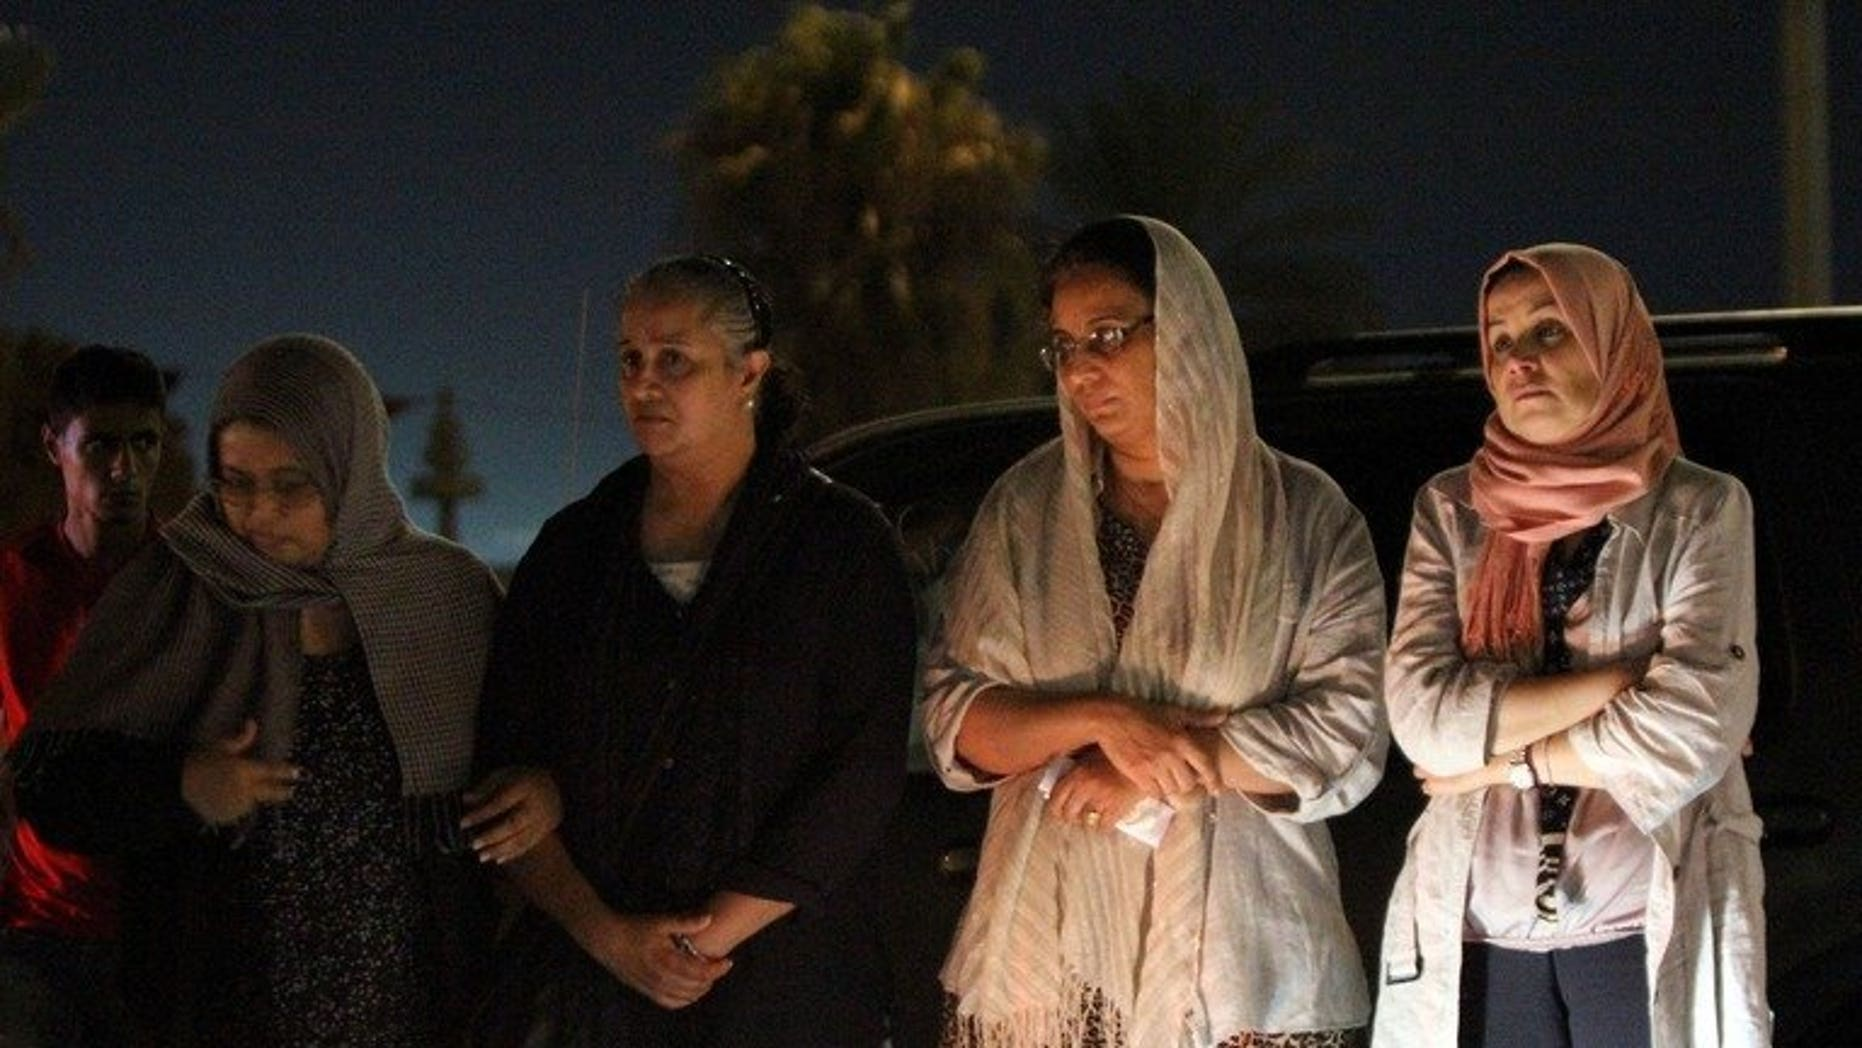 Benghazi residents gather in front of the Tibesti hotel following the assasination of a prominent Libyan political activist on July 27, 2013. Two powerful explosions went off near the courthouse in Benghazi Sunday night, leaving 10 people injured and causing damage, witnesses and a security source said.